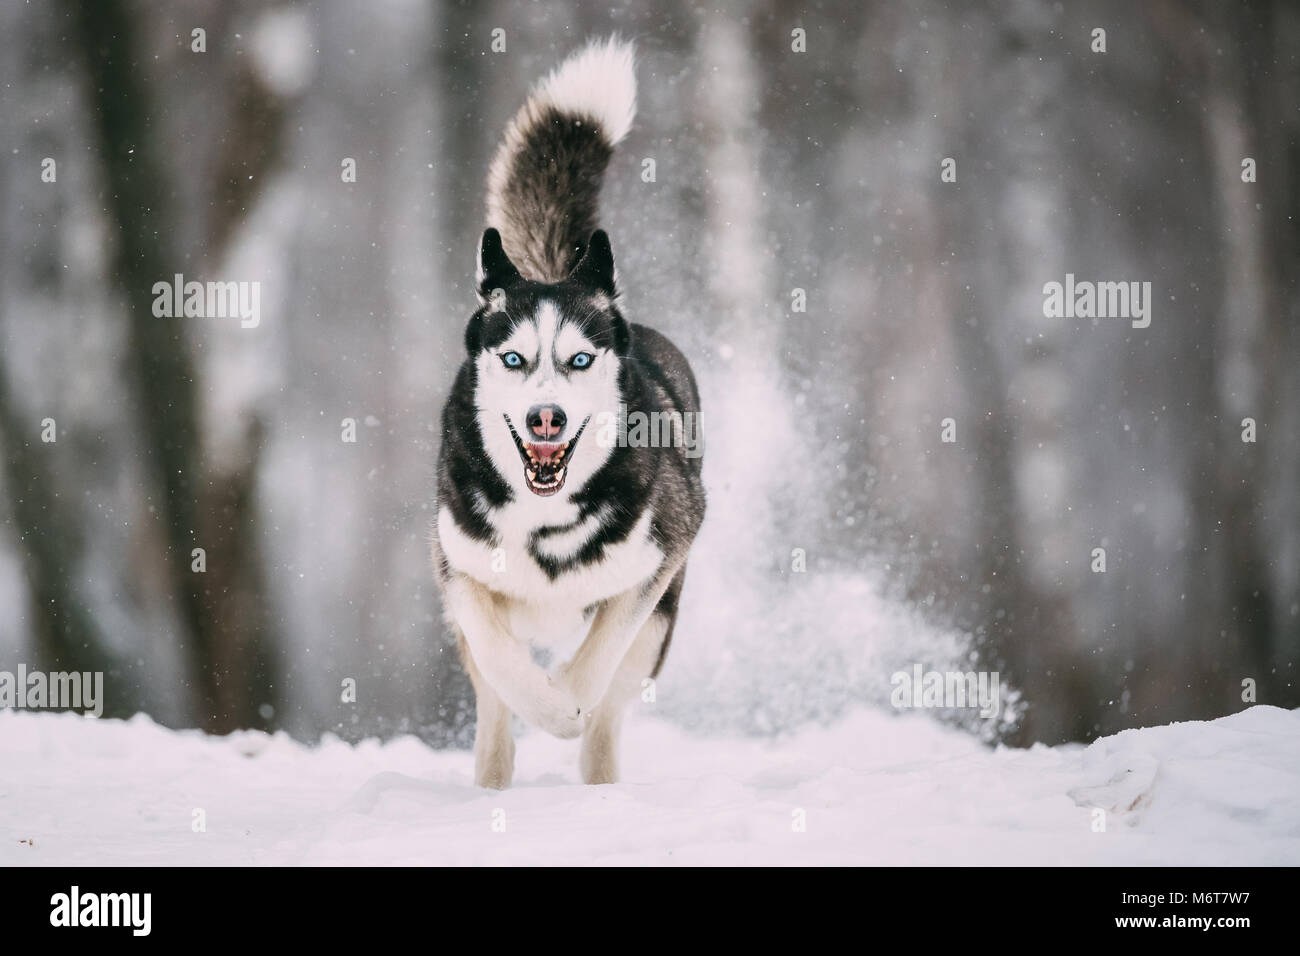 Siberian Husky Dog Running Outdoor In Snowy Field At Winter Day. Smiling Dog. - Stock Image